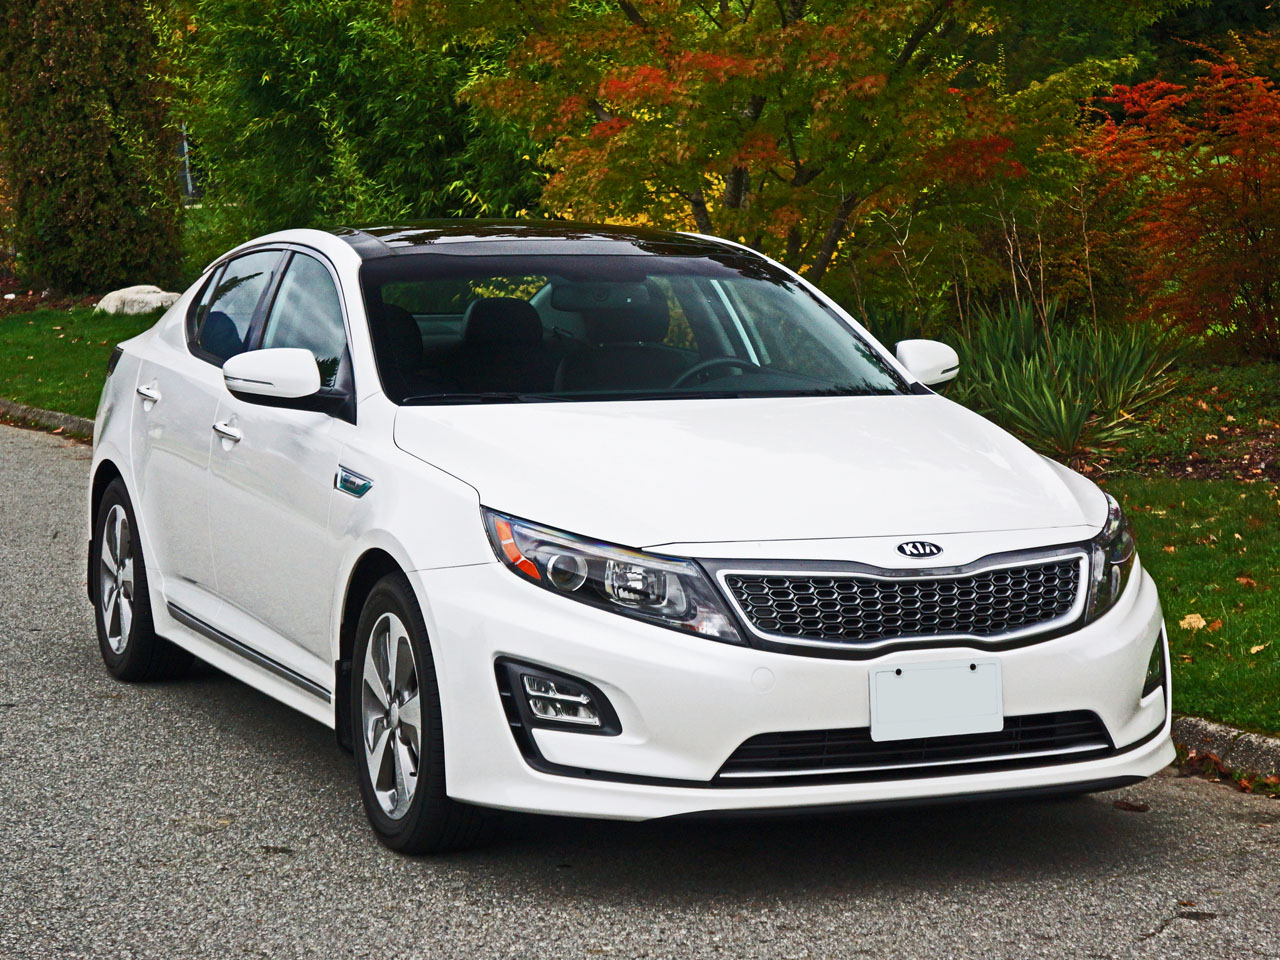 near htm bend elkhart kia indiana exterior mi optima in jpg new for south sale hybrid gallery niles